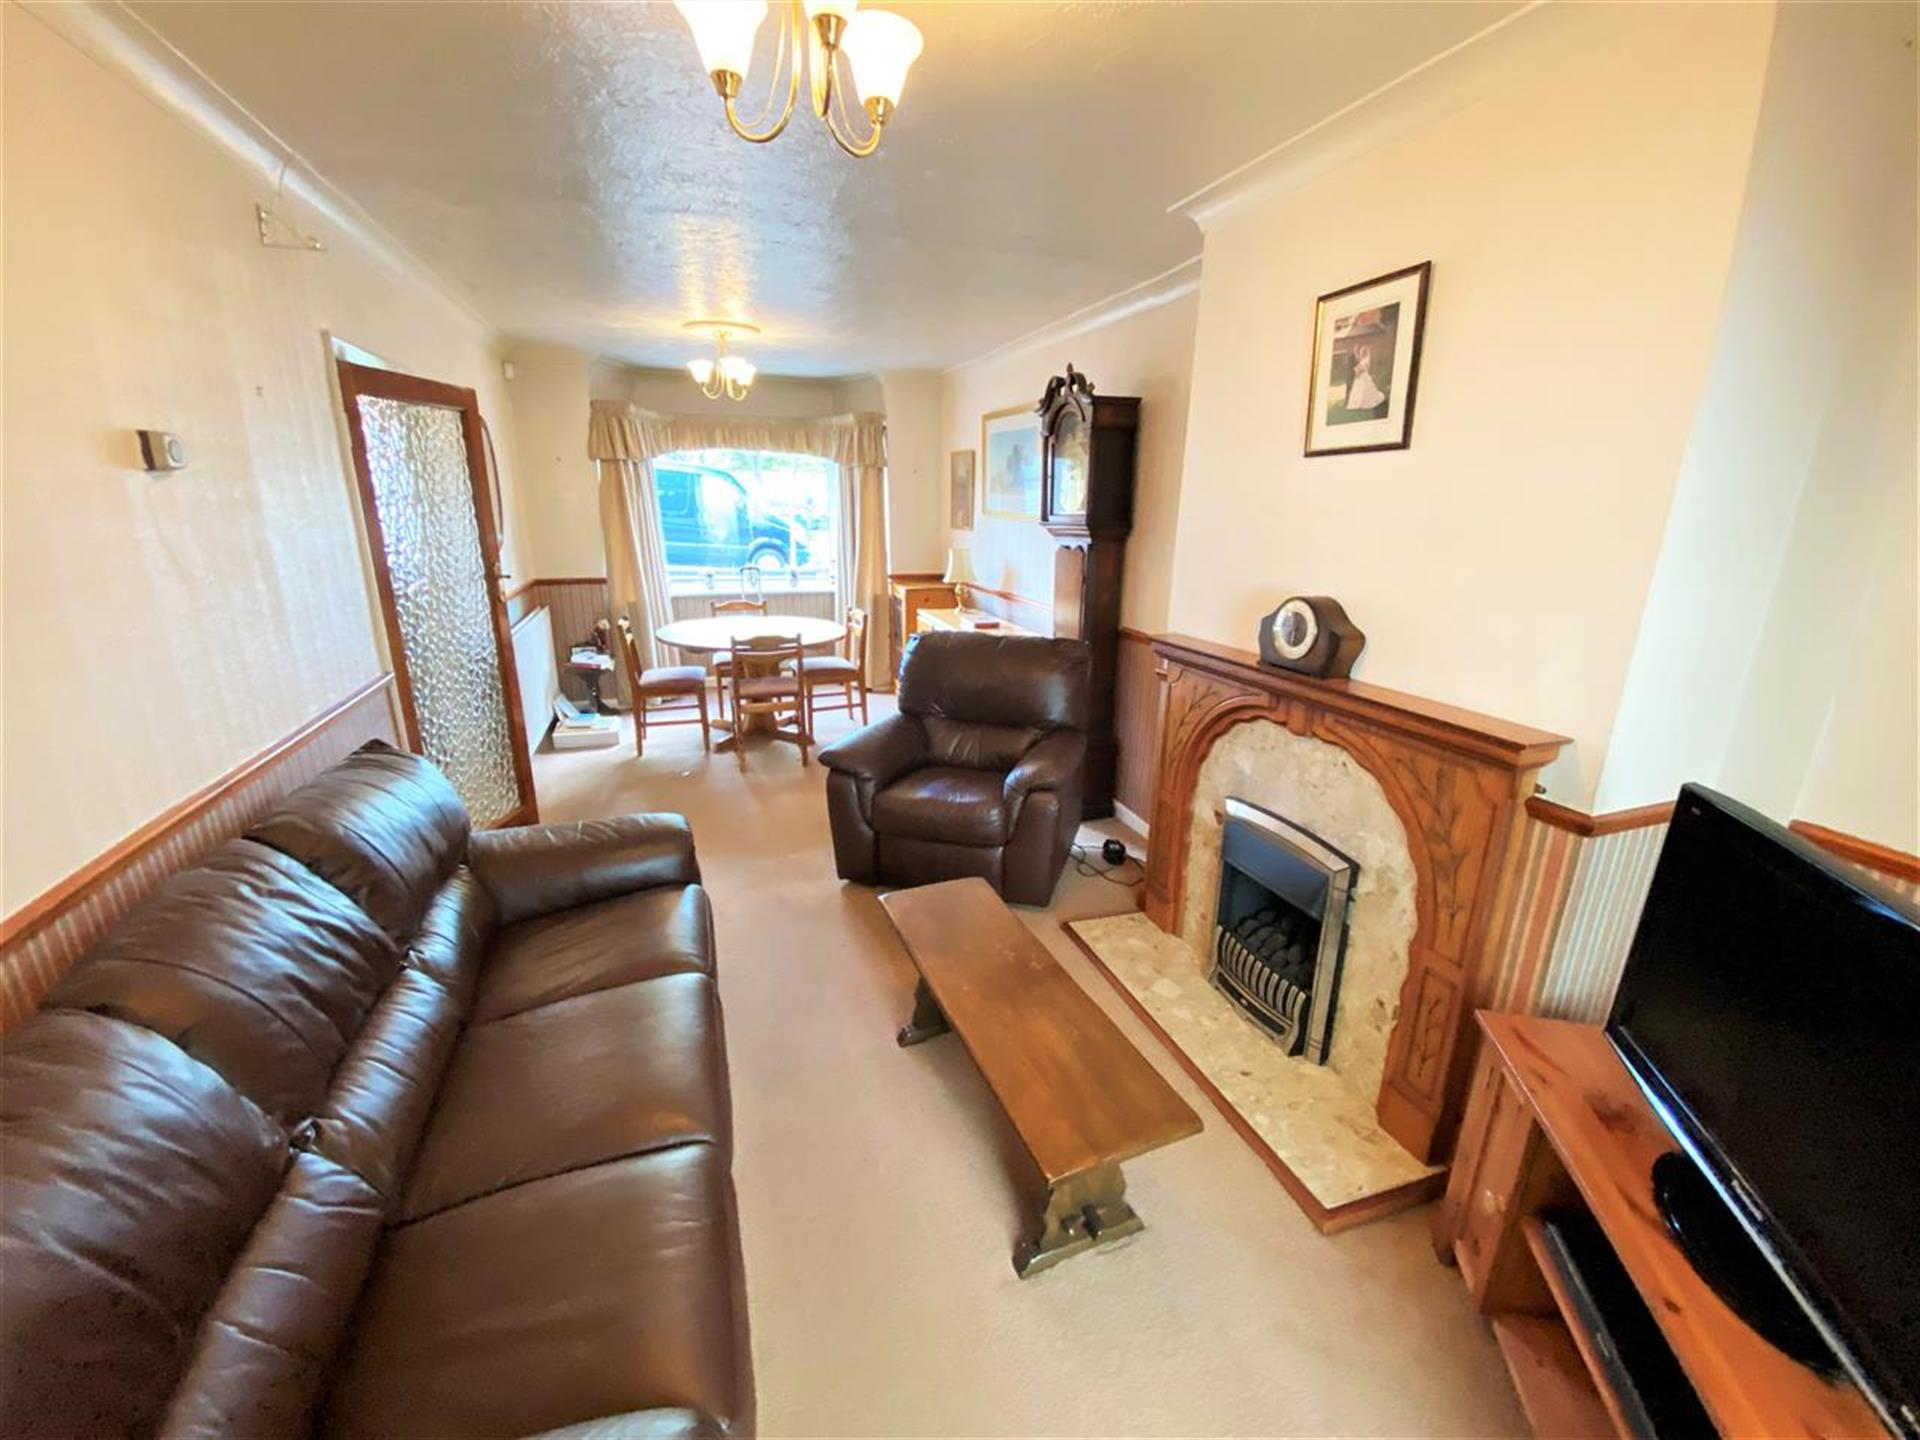 3 Bedroom Semi-detached House For Sale - Through Lounge